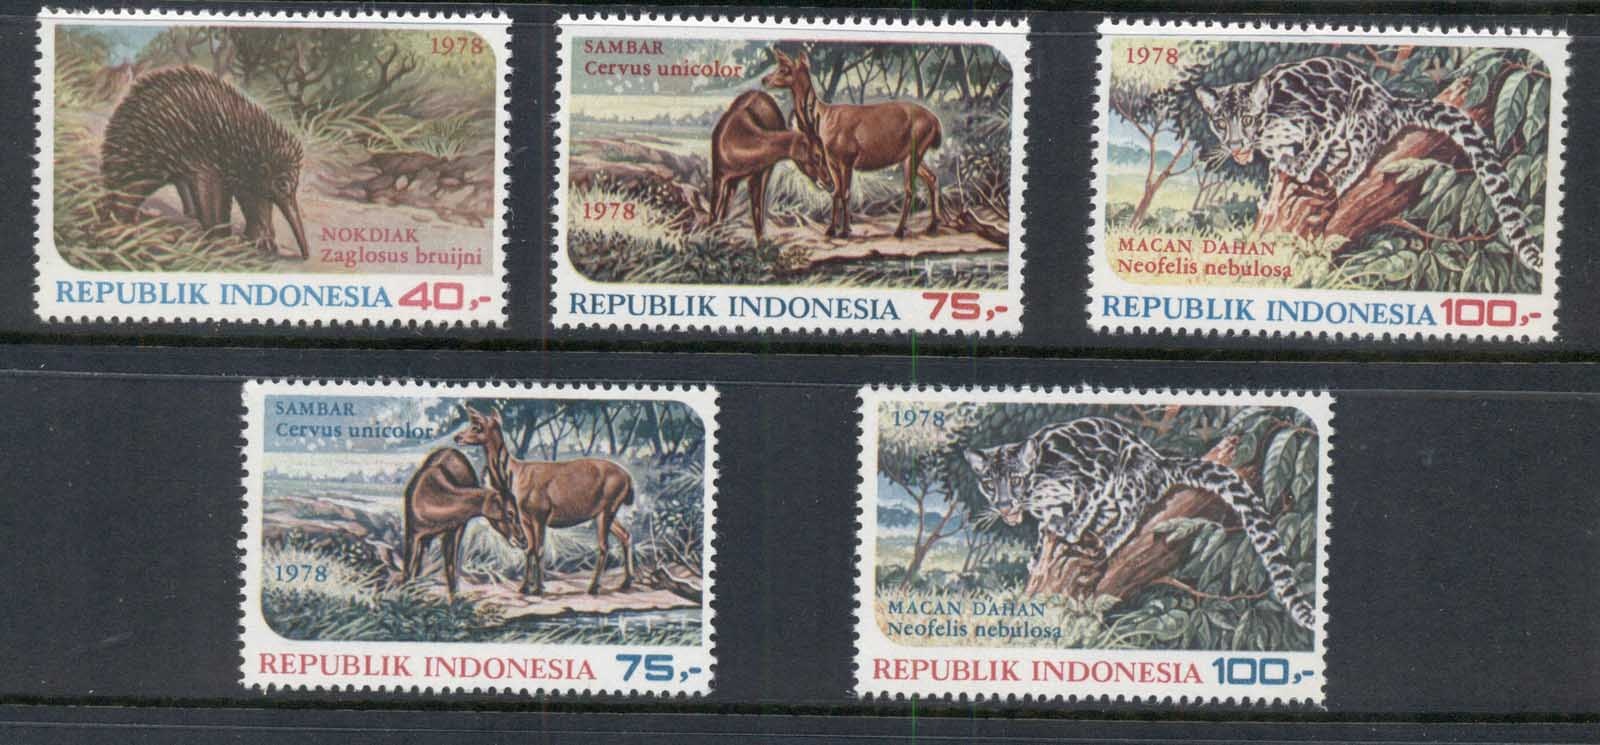 Indonesia 1978 Wildlife Protection MUH